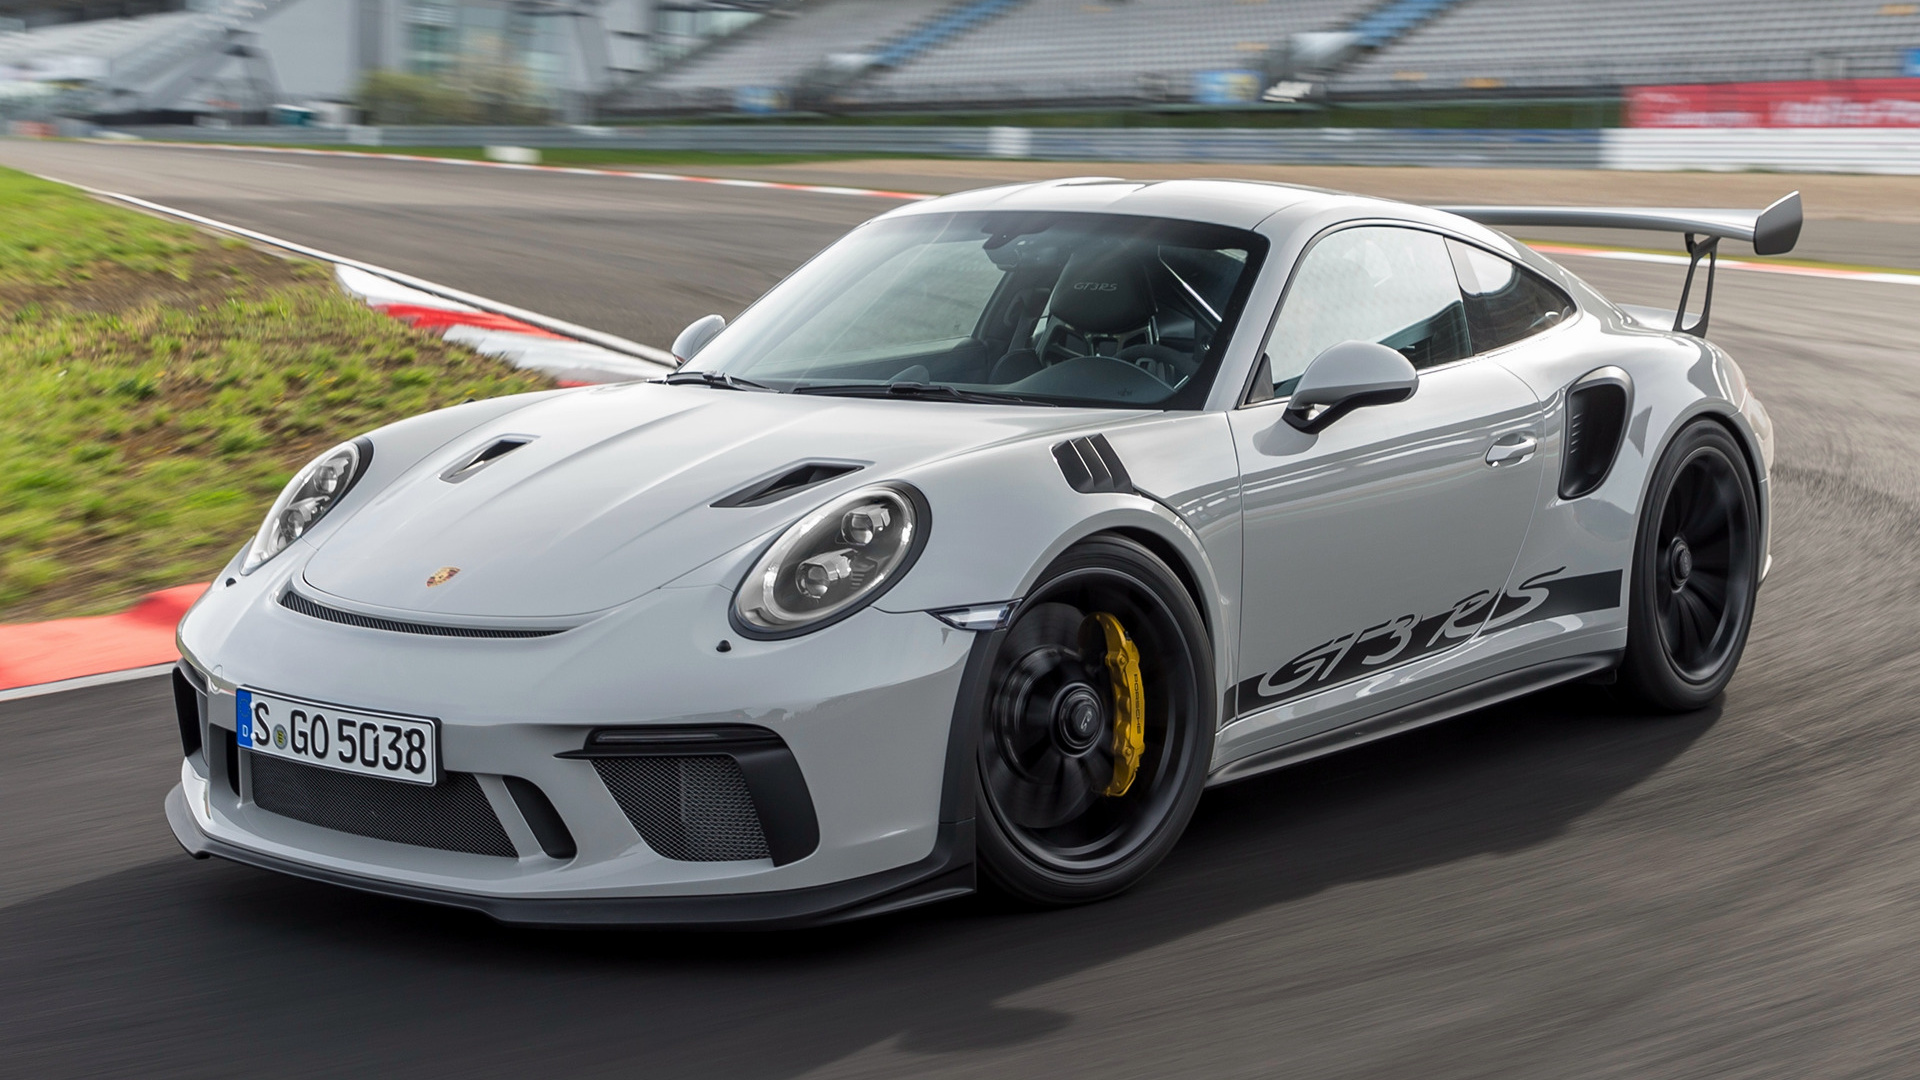 Free Download 2018 Porsche 911 Gt3 Rs Wallpapers And Hd Images Car Pixel 1920x1080 For Your Desktop Mobile Tablet Explore 17 Porsche 911 Gt3 Rs 2018 Wallpapers Porsche 911